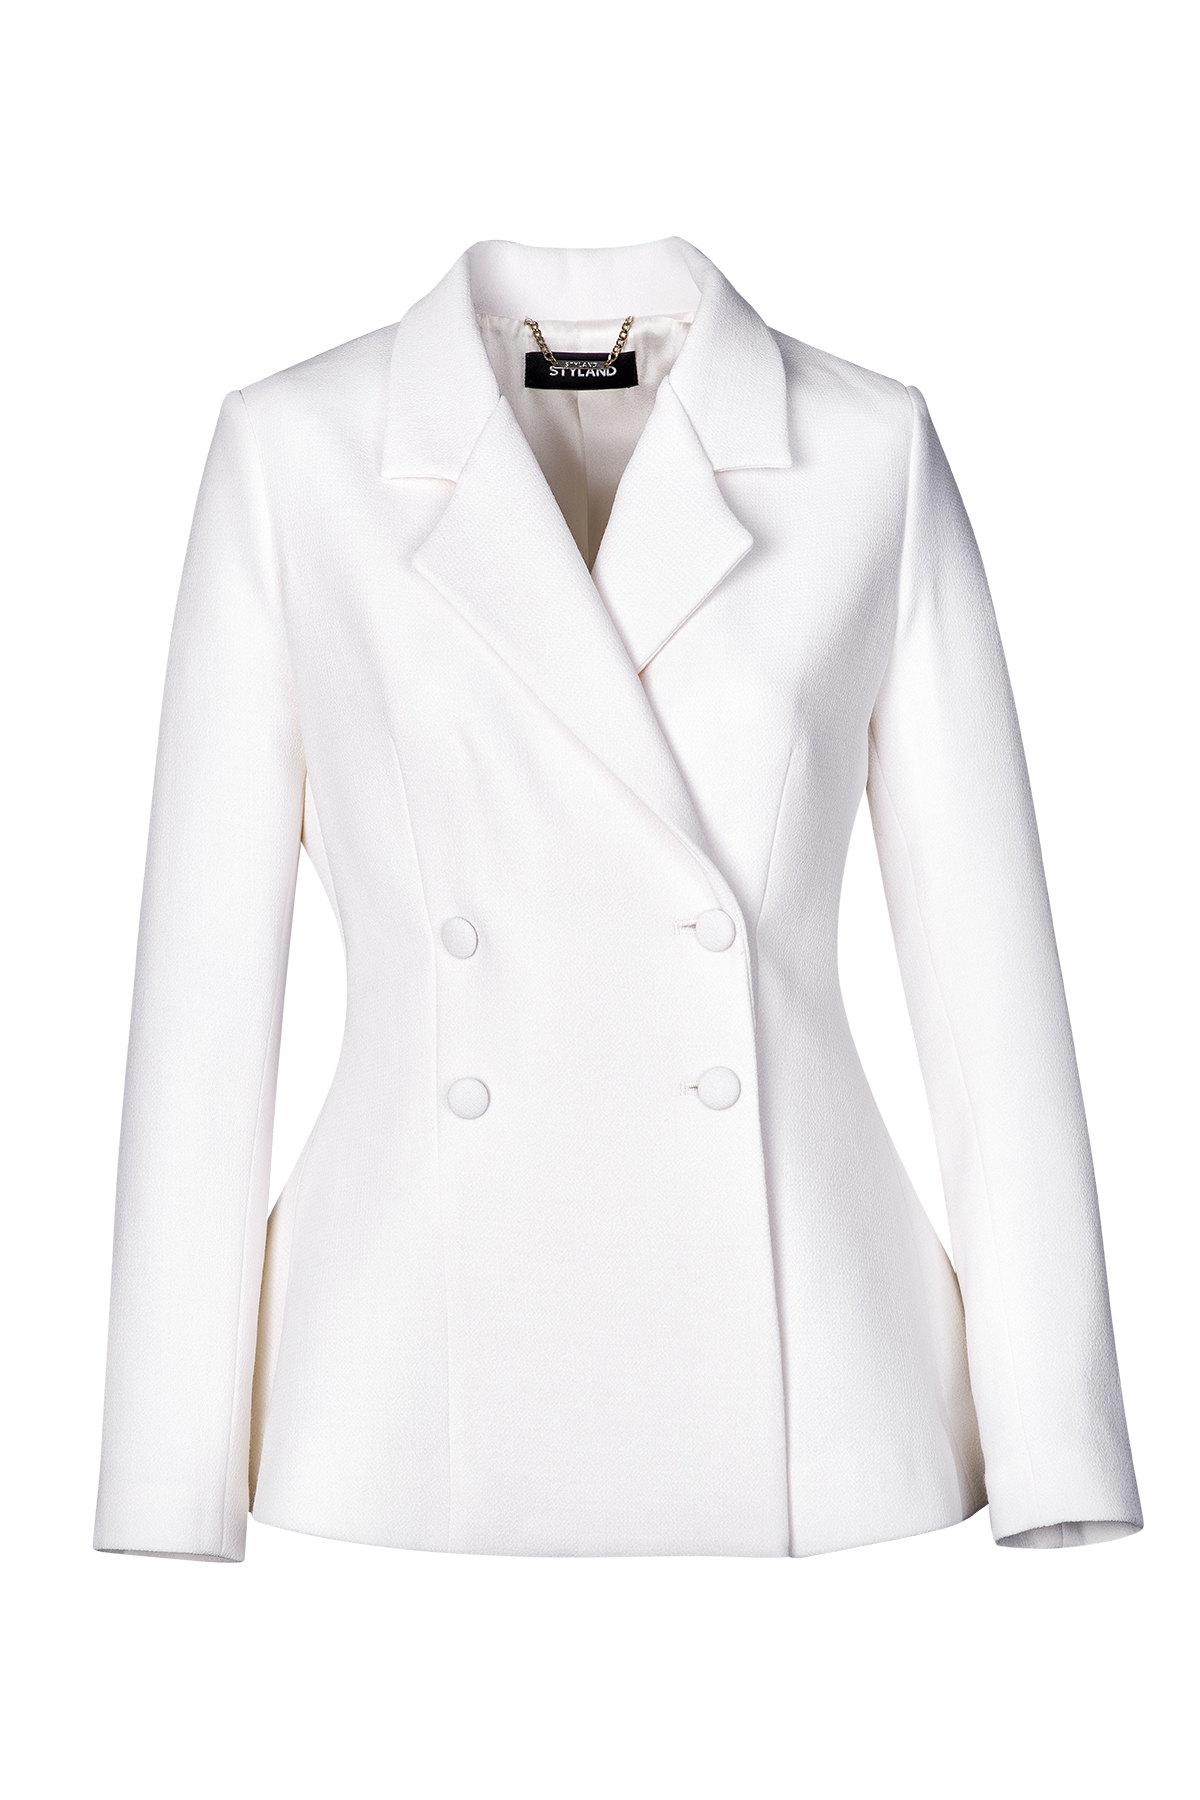 WHITE DOUBLE BREASTED WOOL JACKET